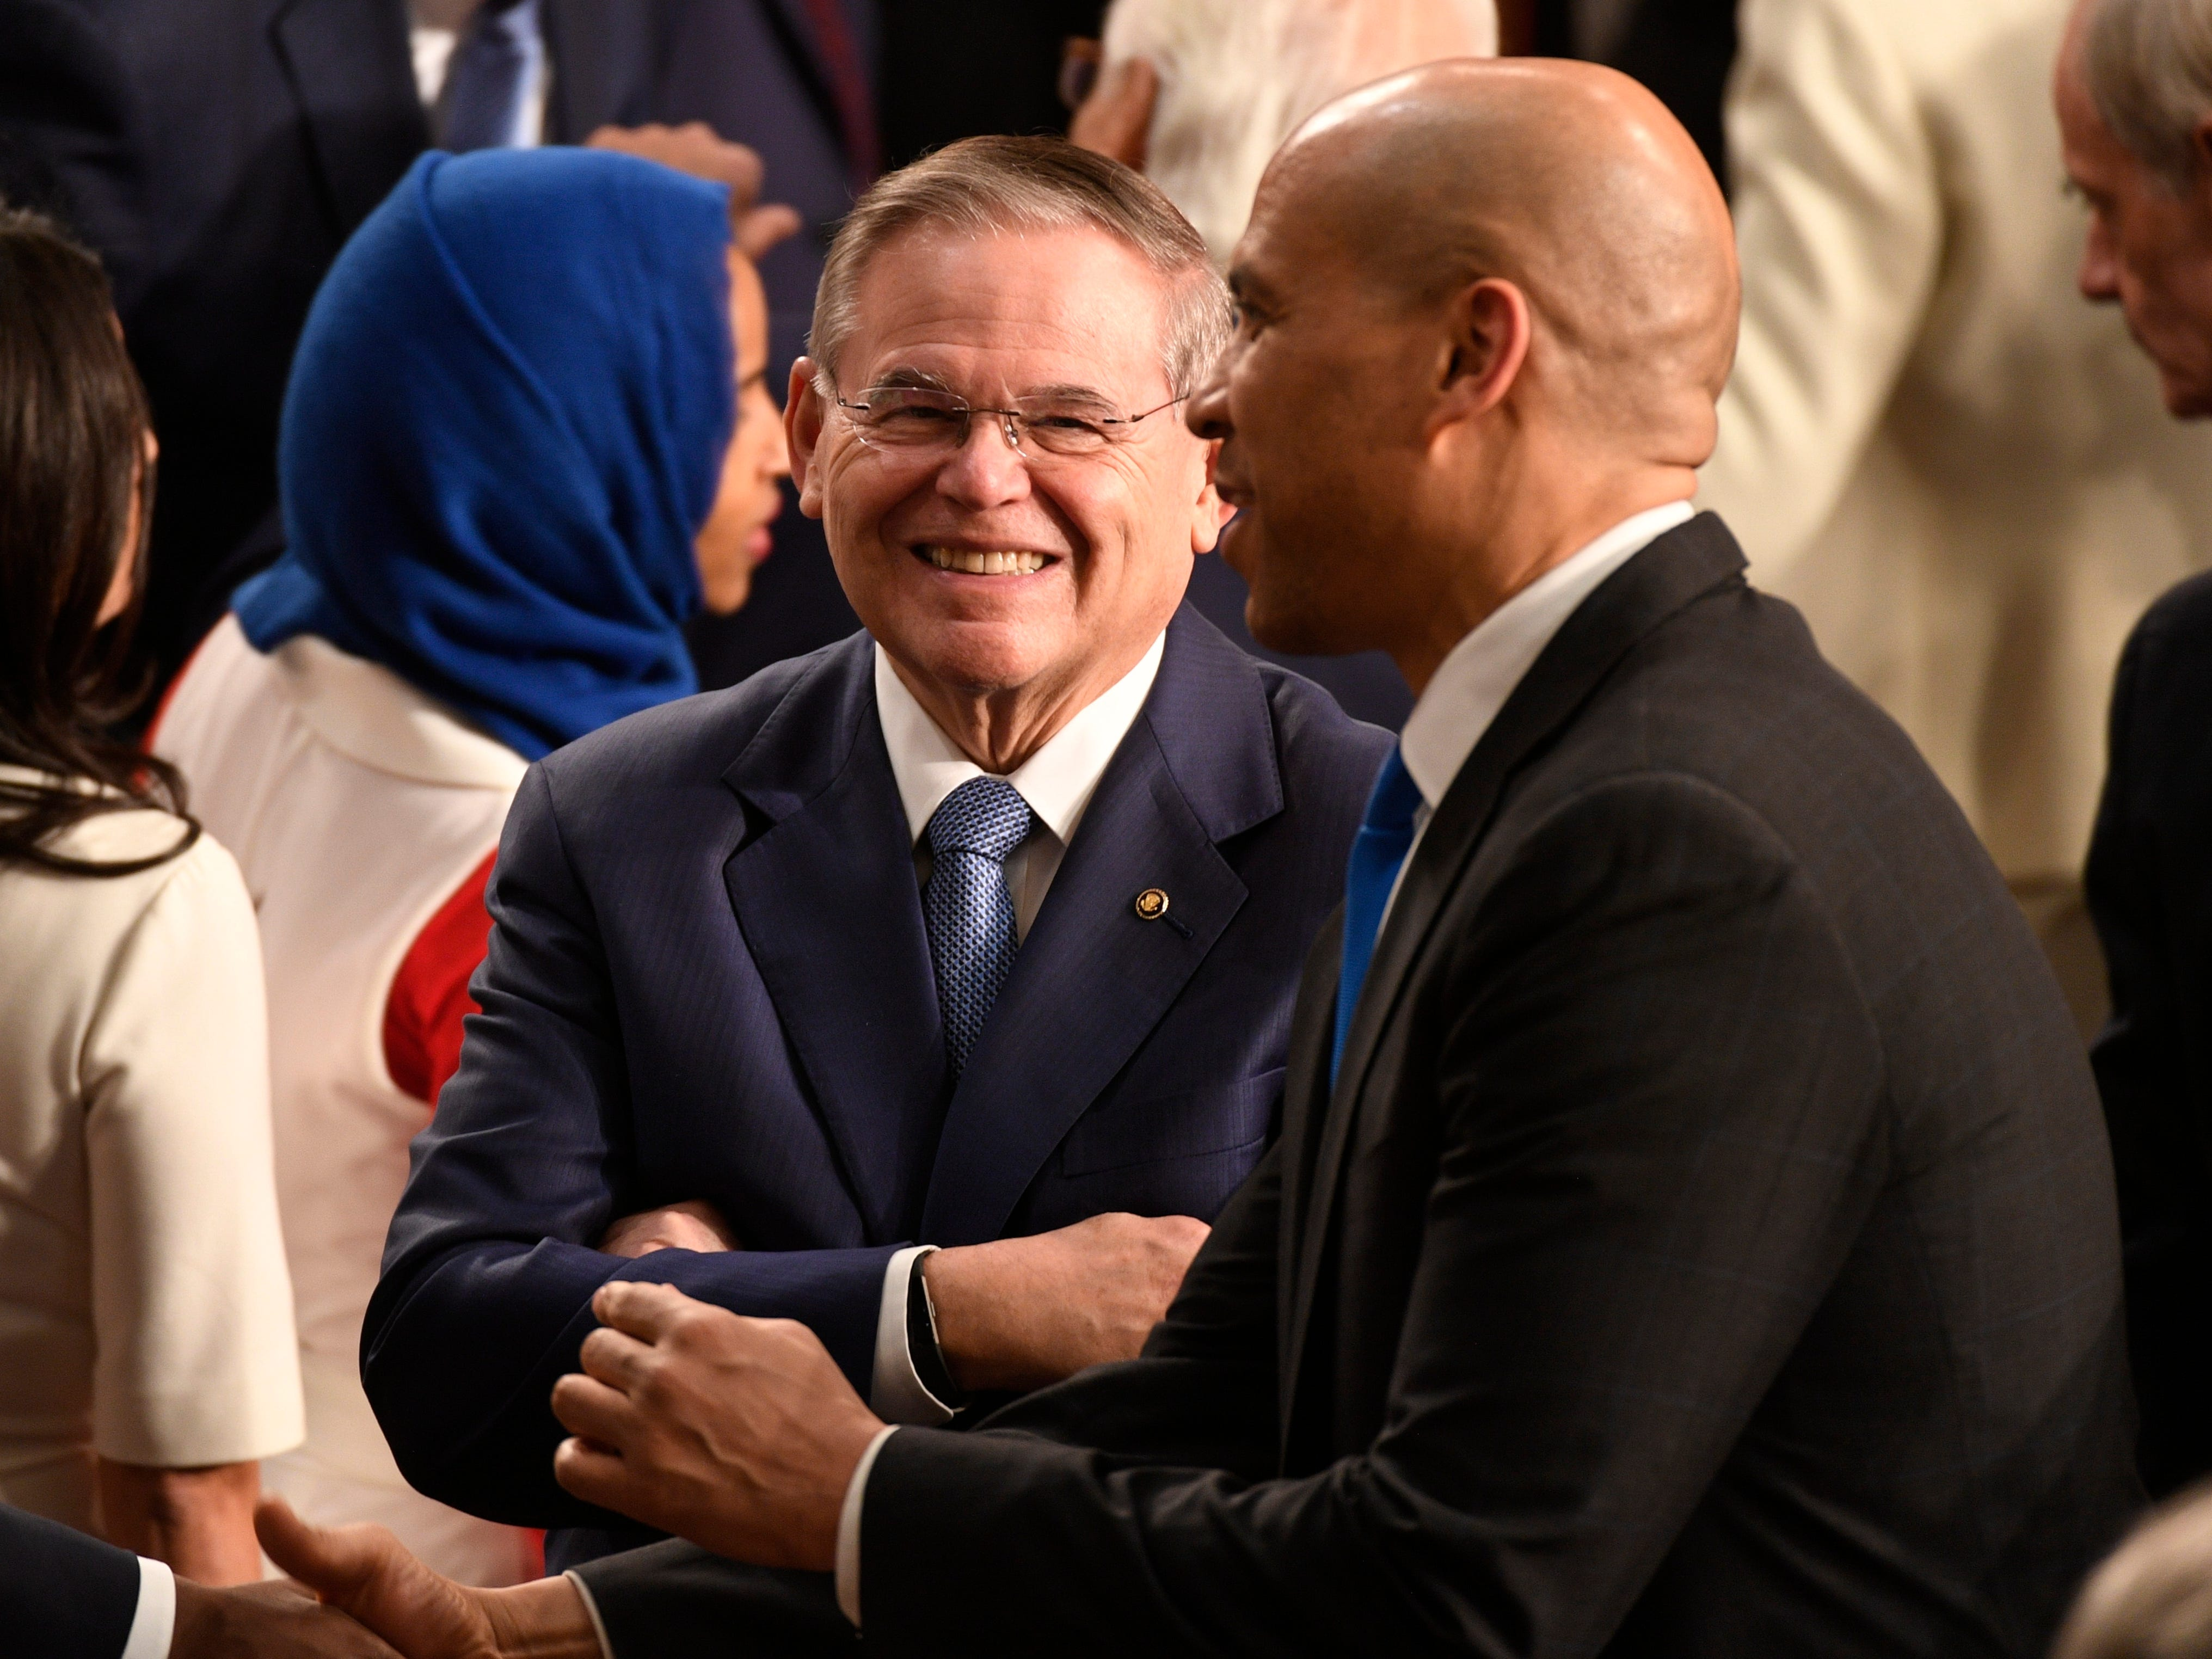 Sen. Bob Menendez (D-N.J.) and Sen. Cory Booker (D-N.J.) talk before President Donald Trump delivers the State of the Union address.